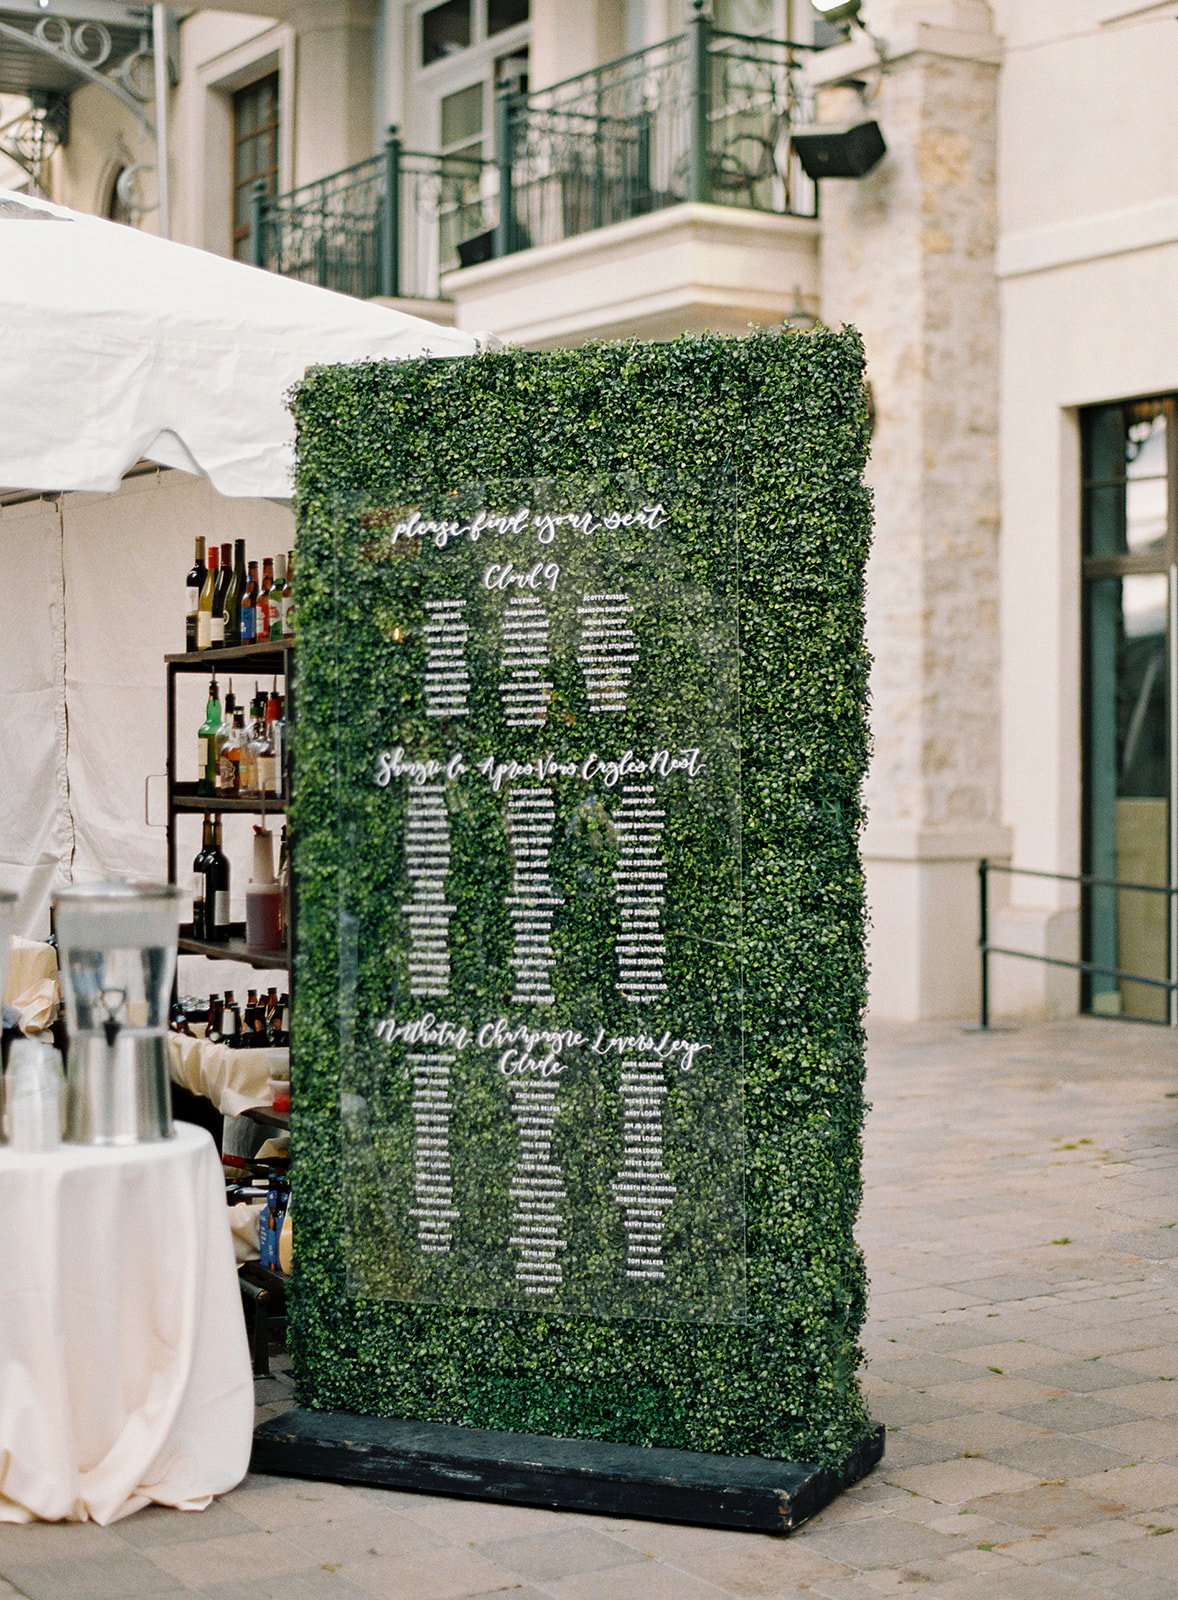 acryllic board seating chart greenery wall